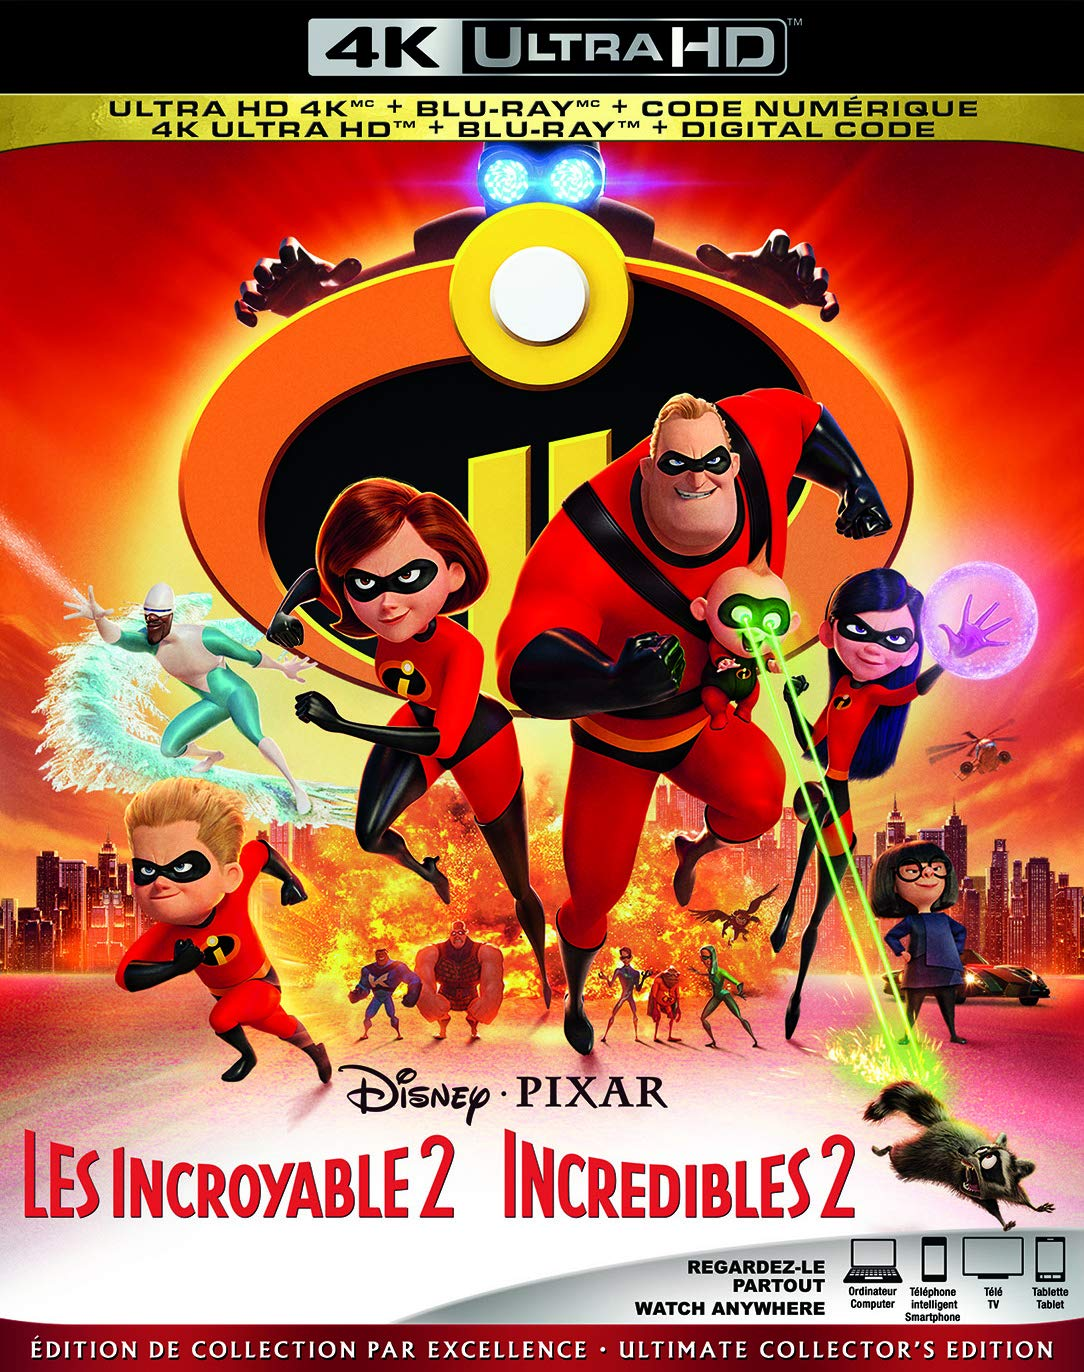 INCREDIBLES 2 [Blu-ray] Craig T. Nelson Holly Hunter Sarah Vowell Huckleberry Milner